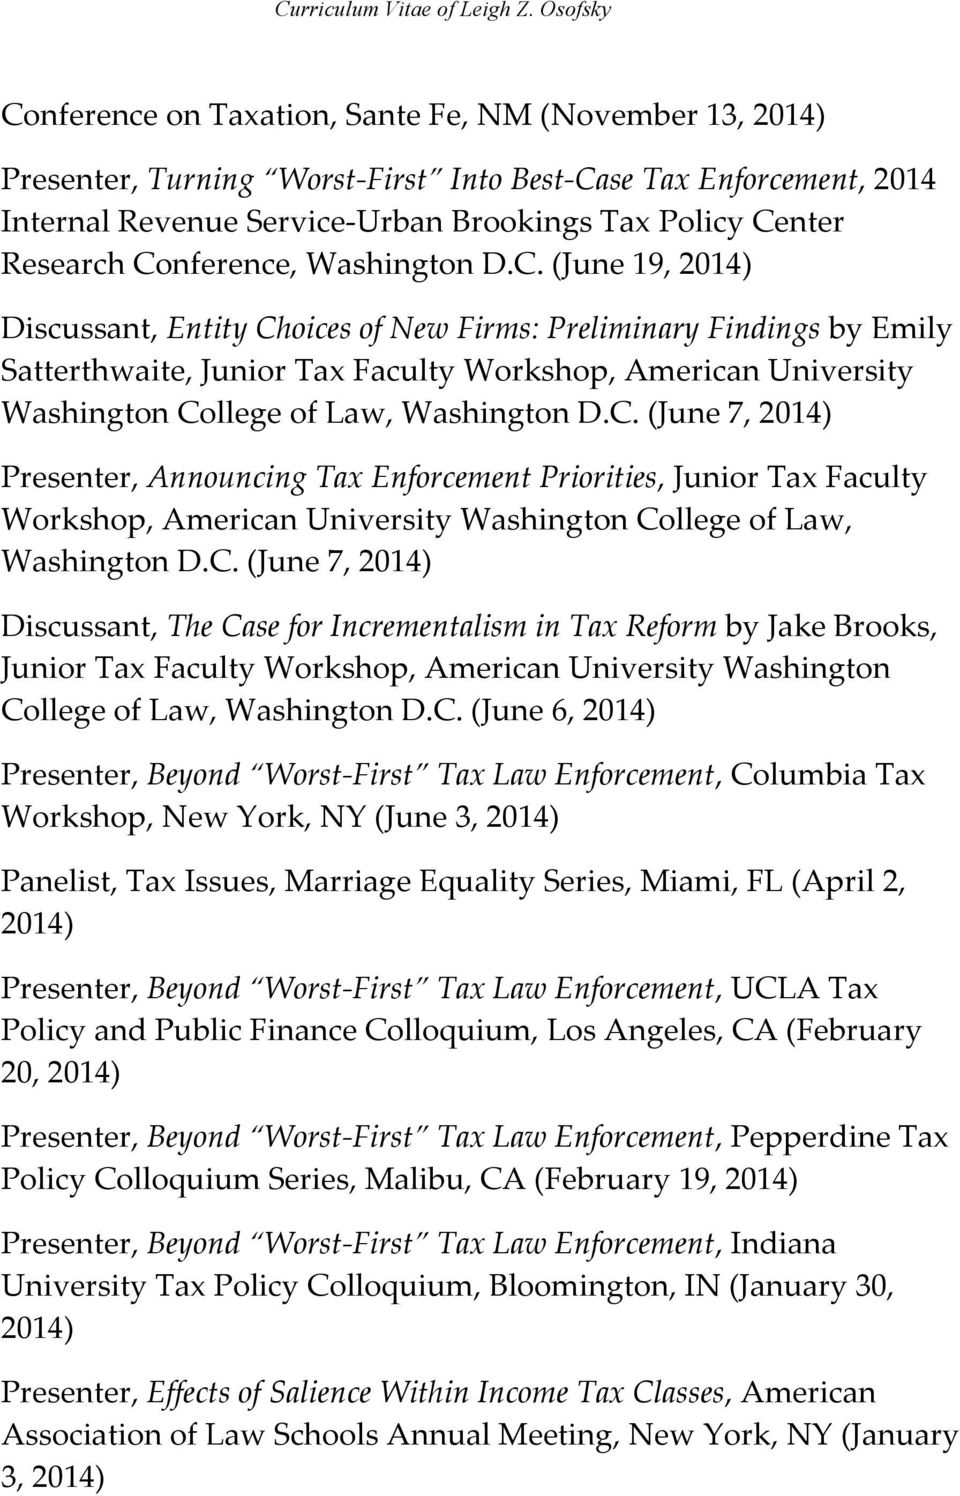 C. (June 7, 2014) Presenter, Announcing Tax Enforcement Priorities, Junior Tax Faculty Workshop, American University Washington College of Law, Washington D.C. (June 7, 2014) Discussant, The Case for Incrementalism in Tax Reform by Jake Brooks, Junior Tax Faculty Workshop, American University Washington College of Law, Washington D.